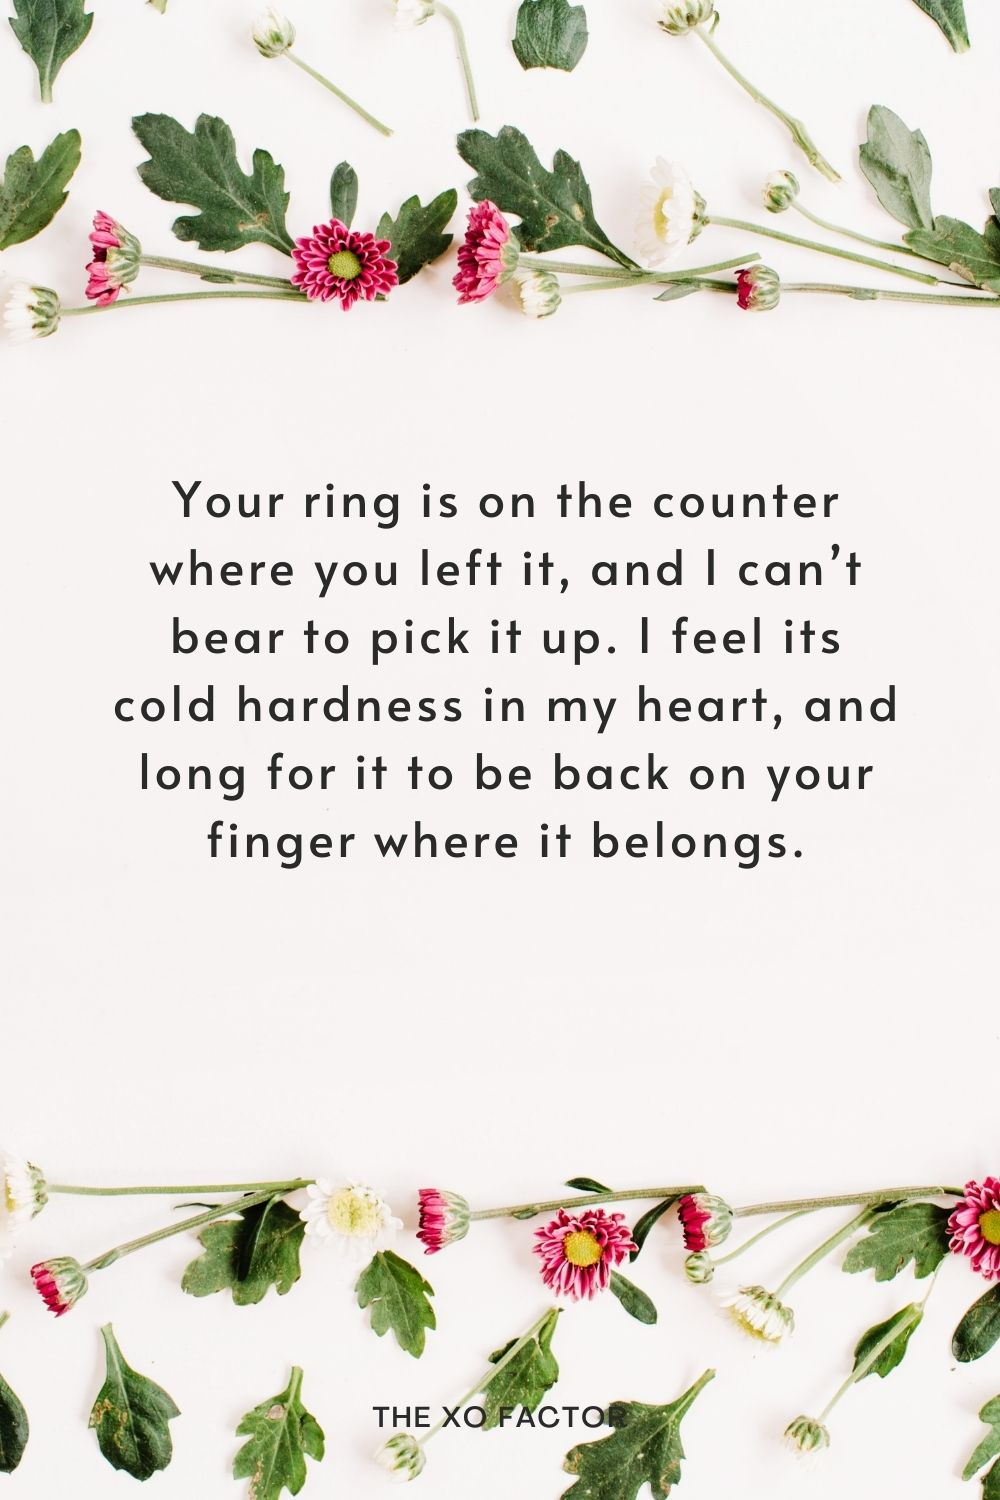 Your ring is on the counter where you left it, and I can't bear to pick it up. I feel its cold hardness in my heart, and long for it to be back on your finger where it belongs.